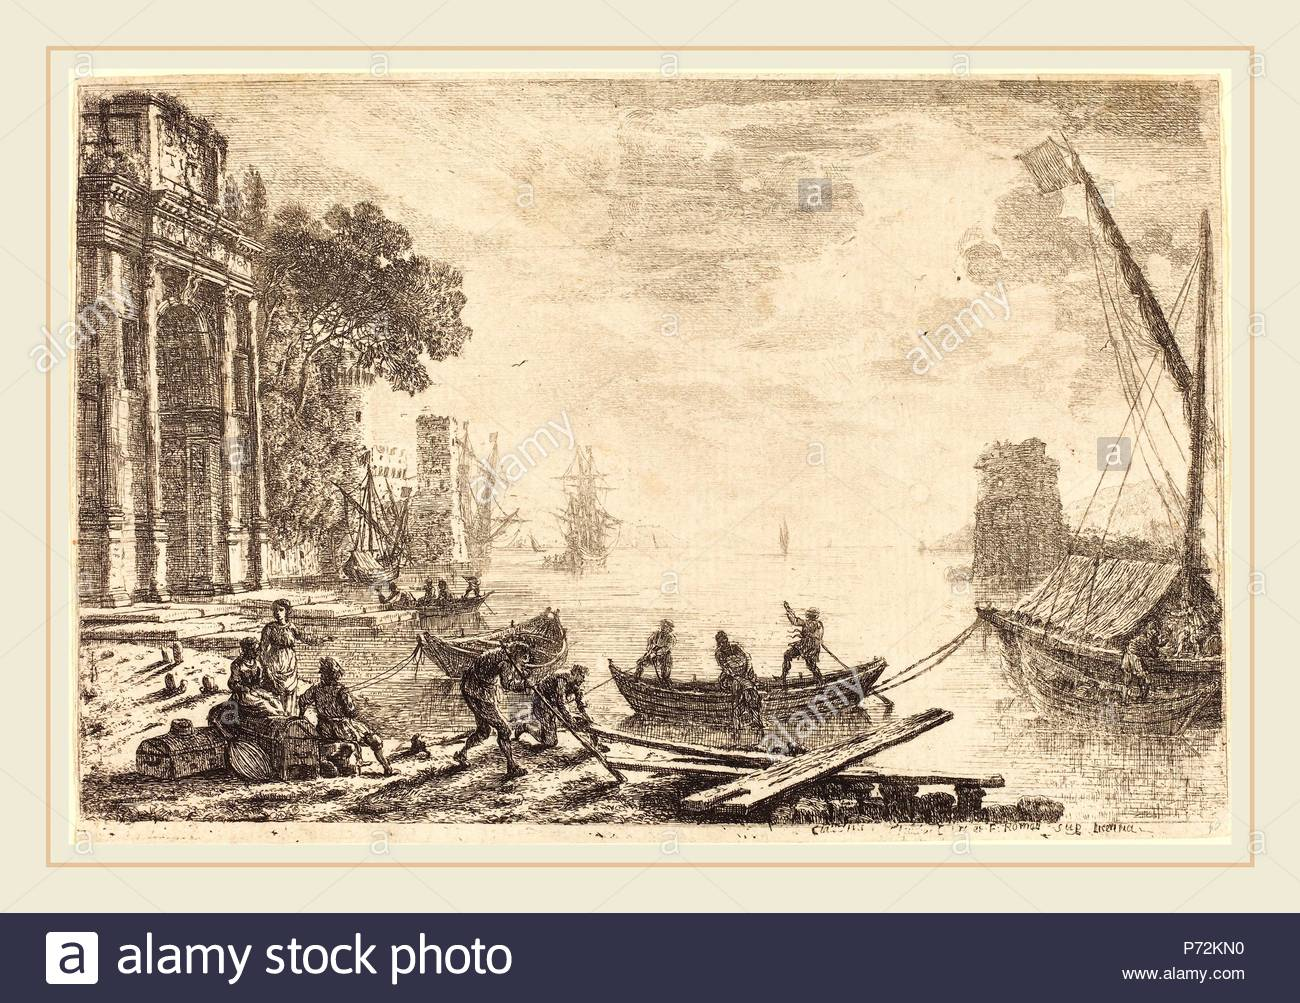 Claude Lorrain, French (1604-1605-1682), Harbor Scene with Rising Sun (Le soleil levant), 1634, etching. - Stock Image